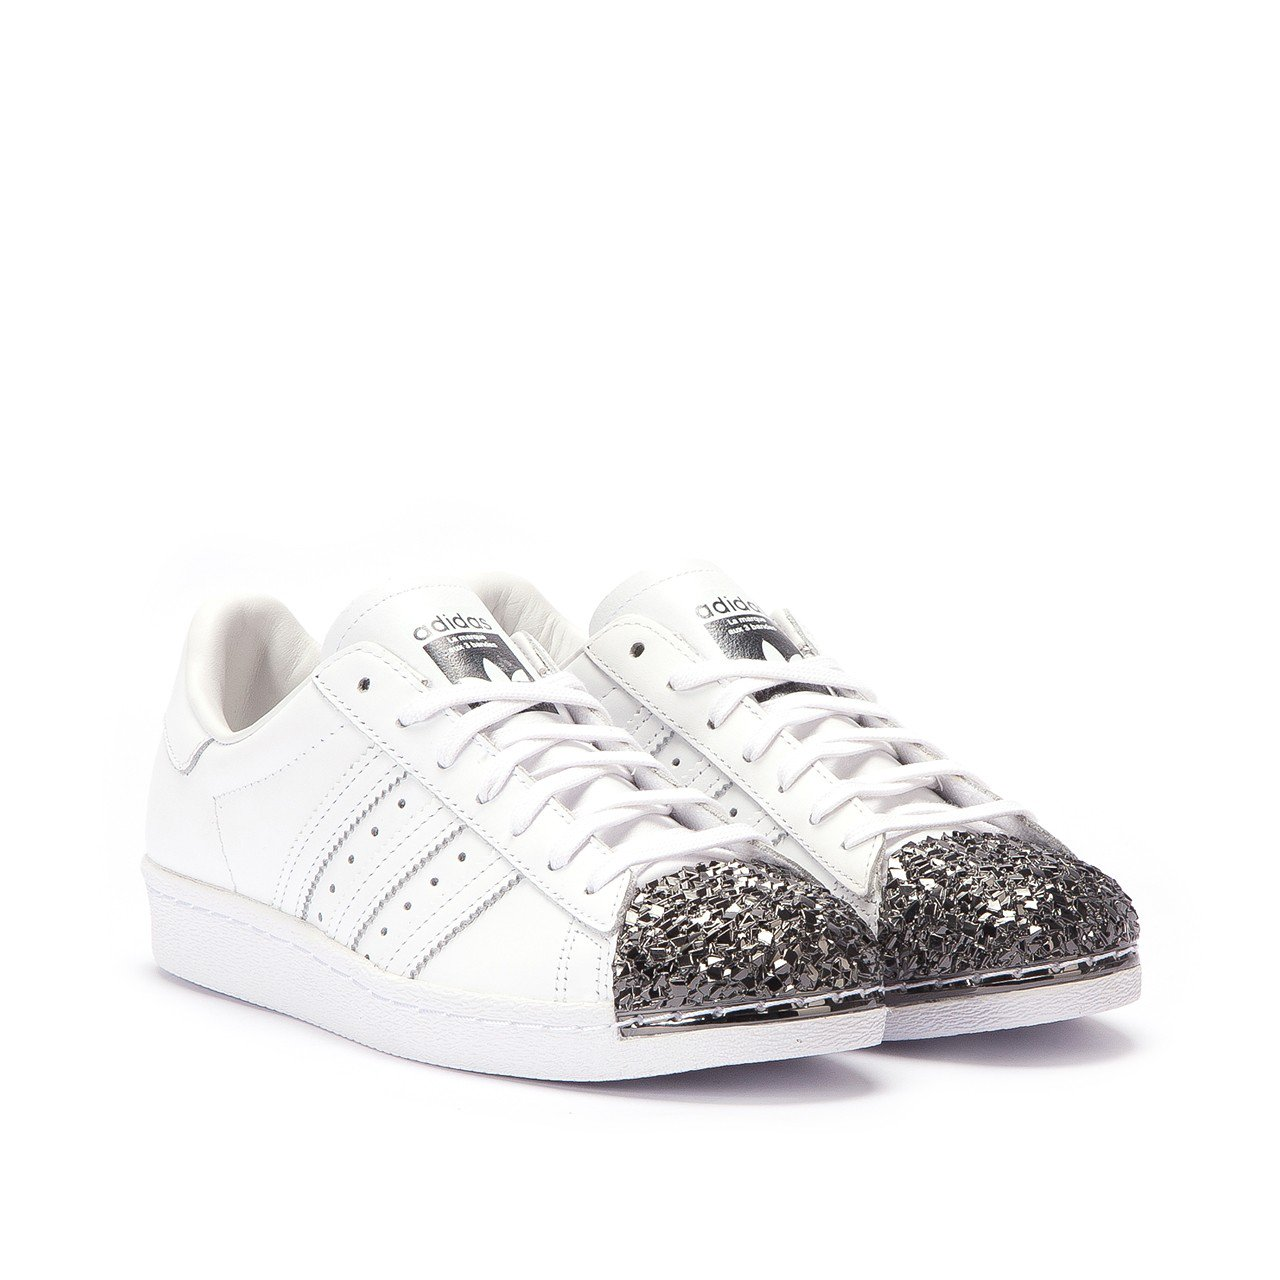 Adidas Originals Superstar 80s 3D Metal Toe SortHvid BB2033